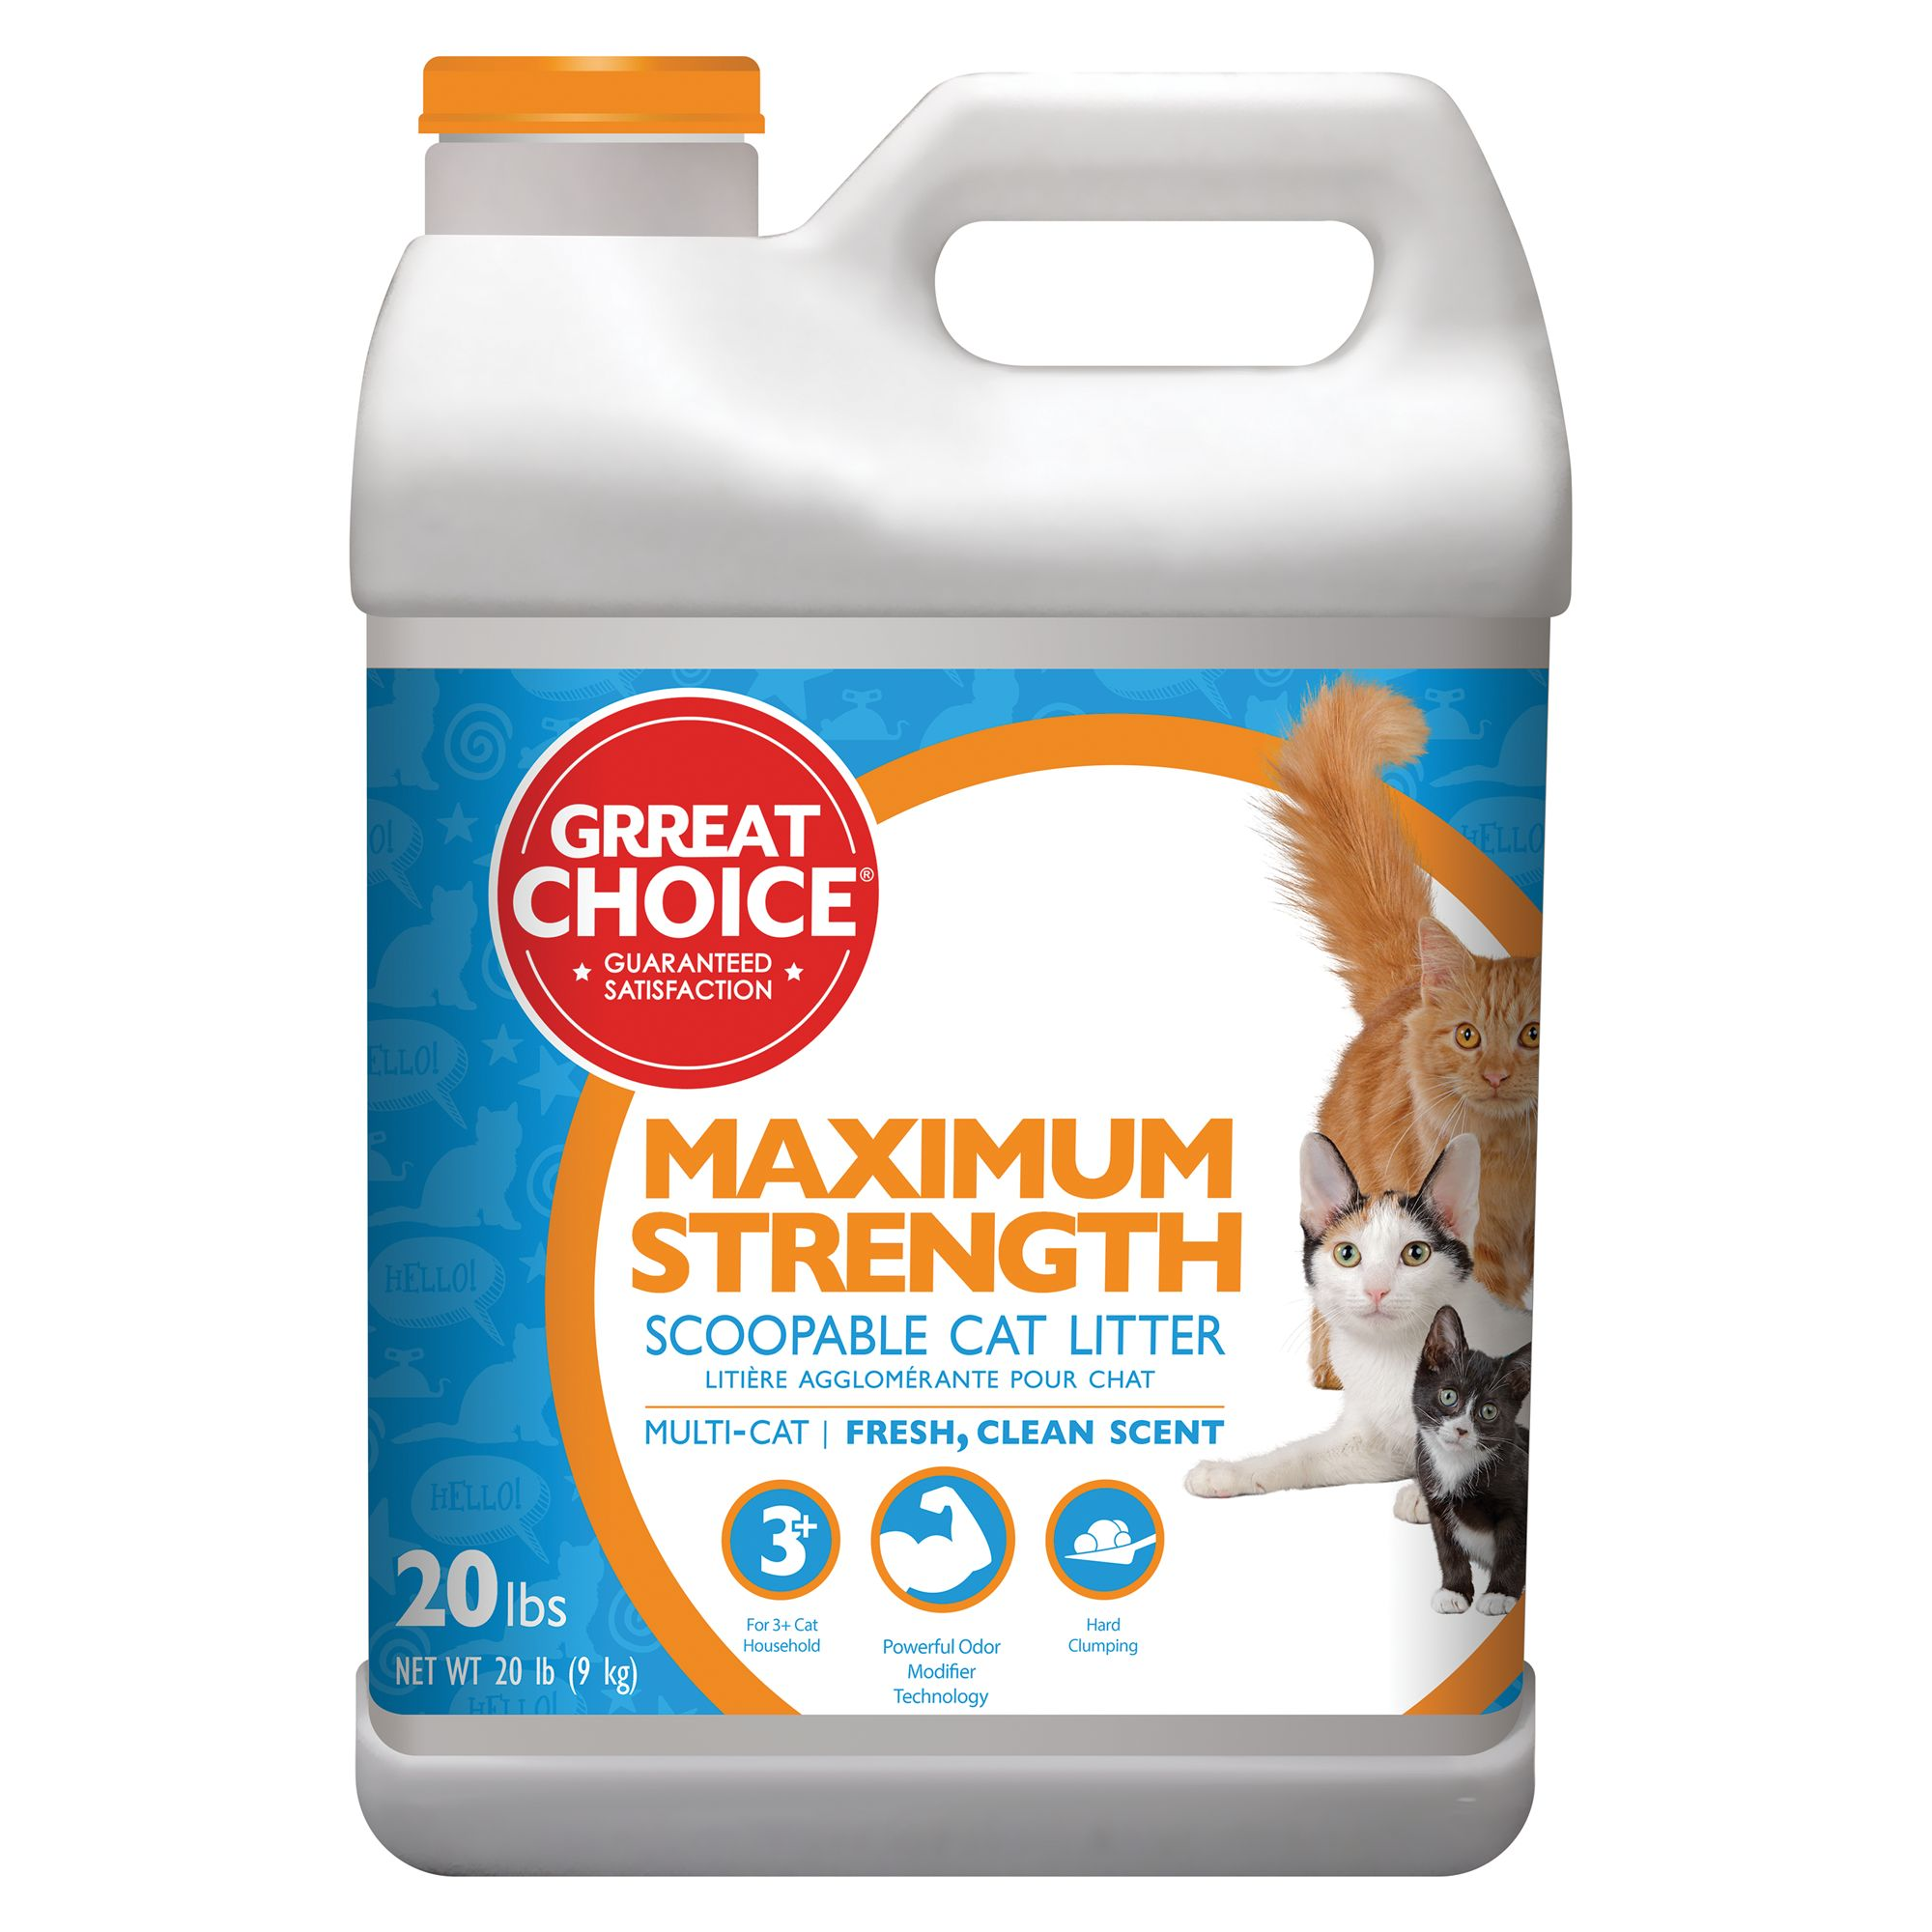 Grreat Choice Maximum Strength Cat Litter - Scoopable, Multi-Cat, Fresh Scent size: 20 Lb 5237042